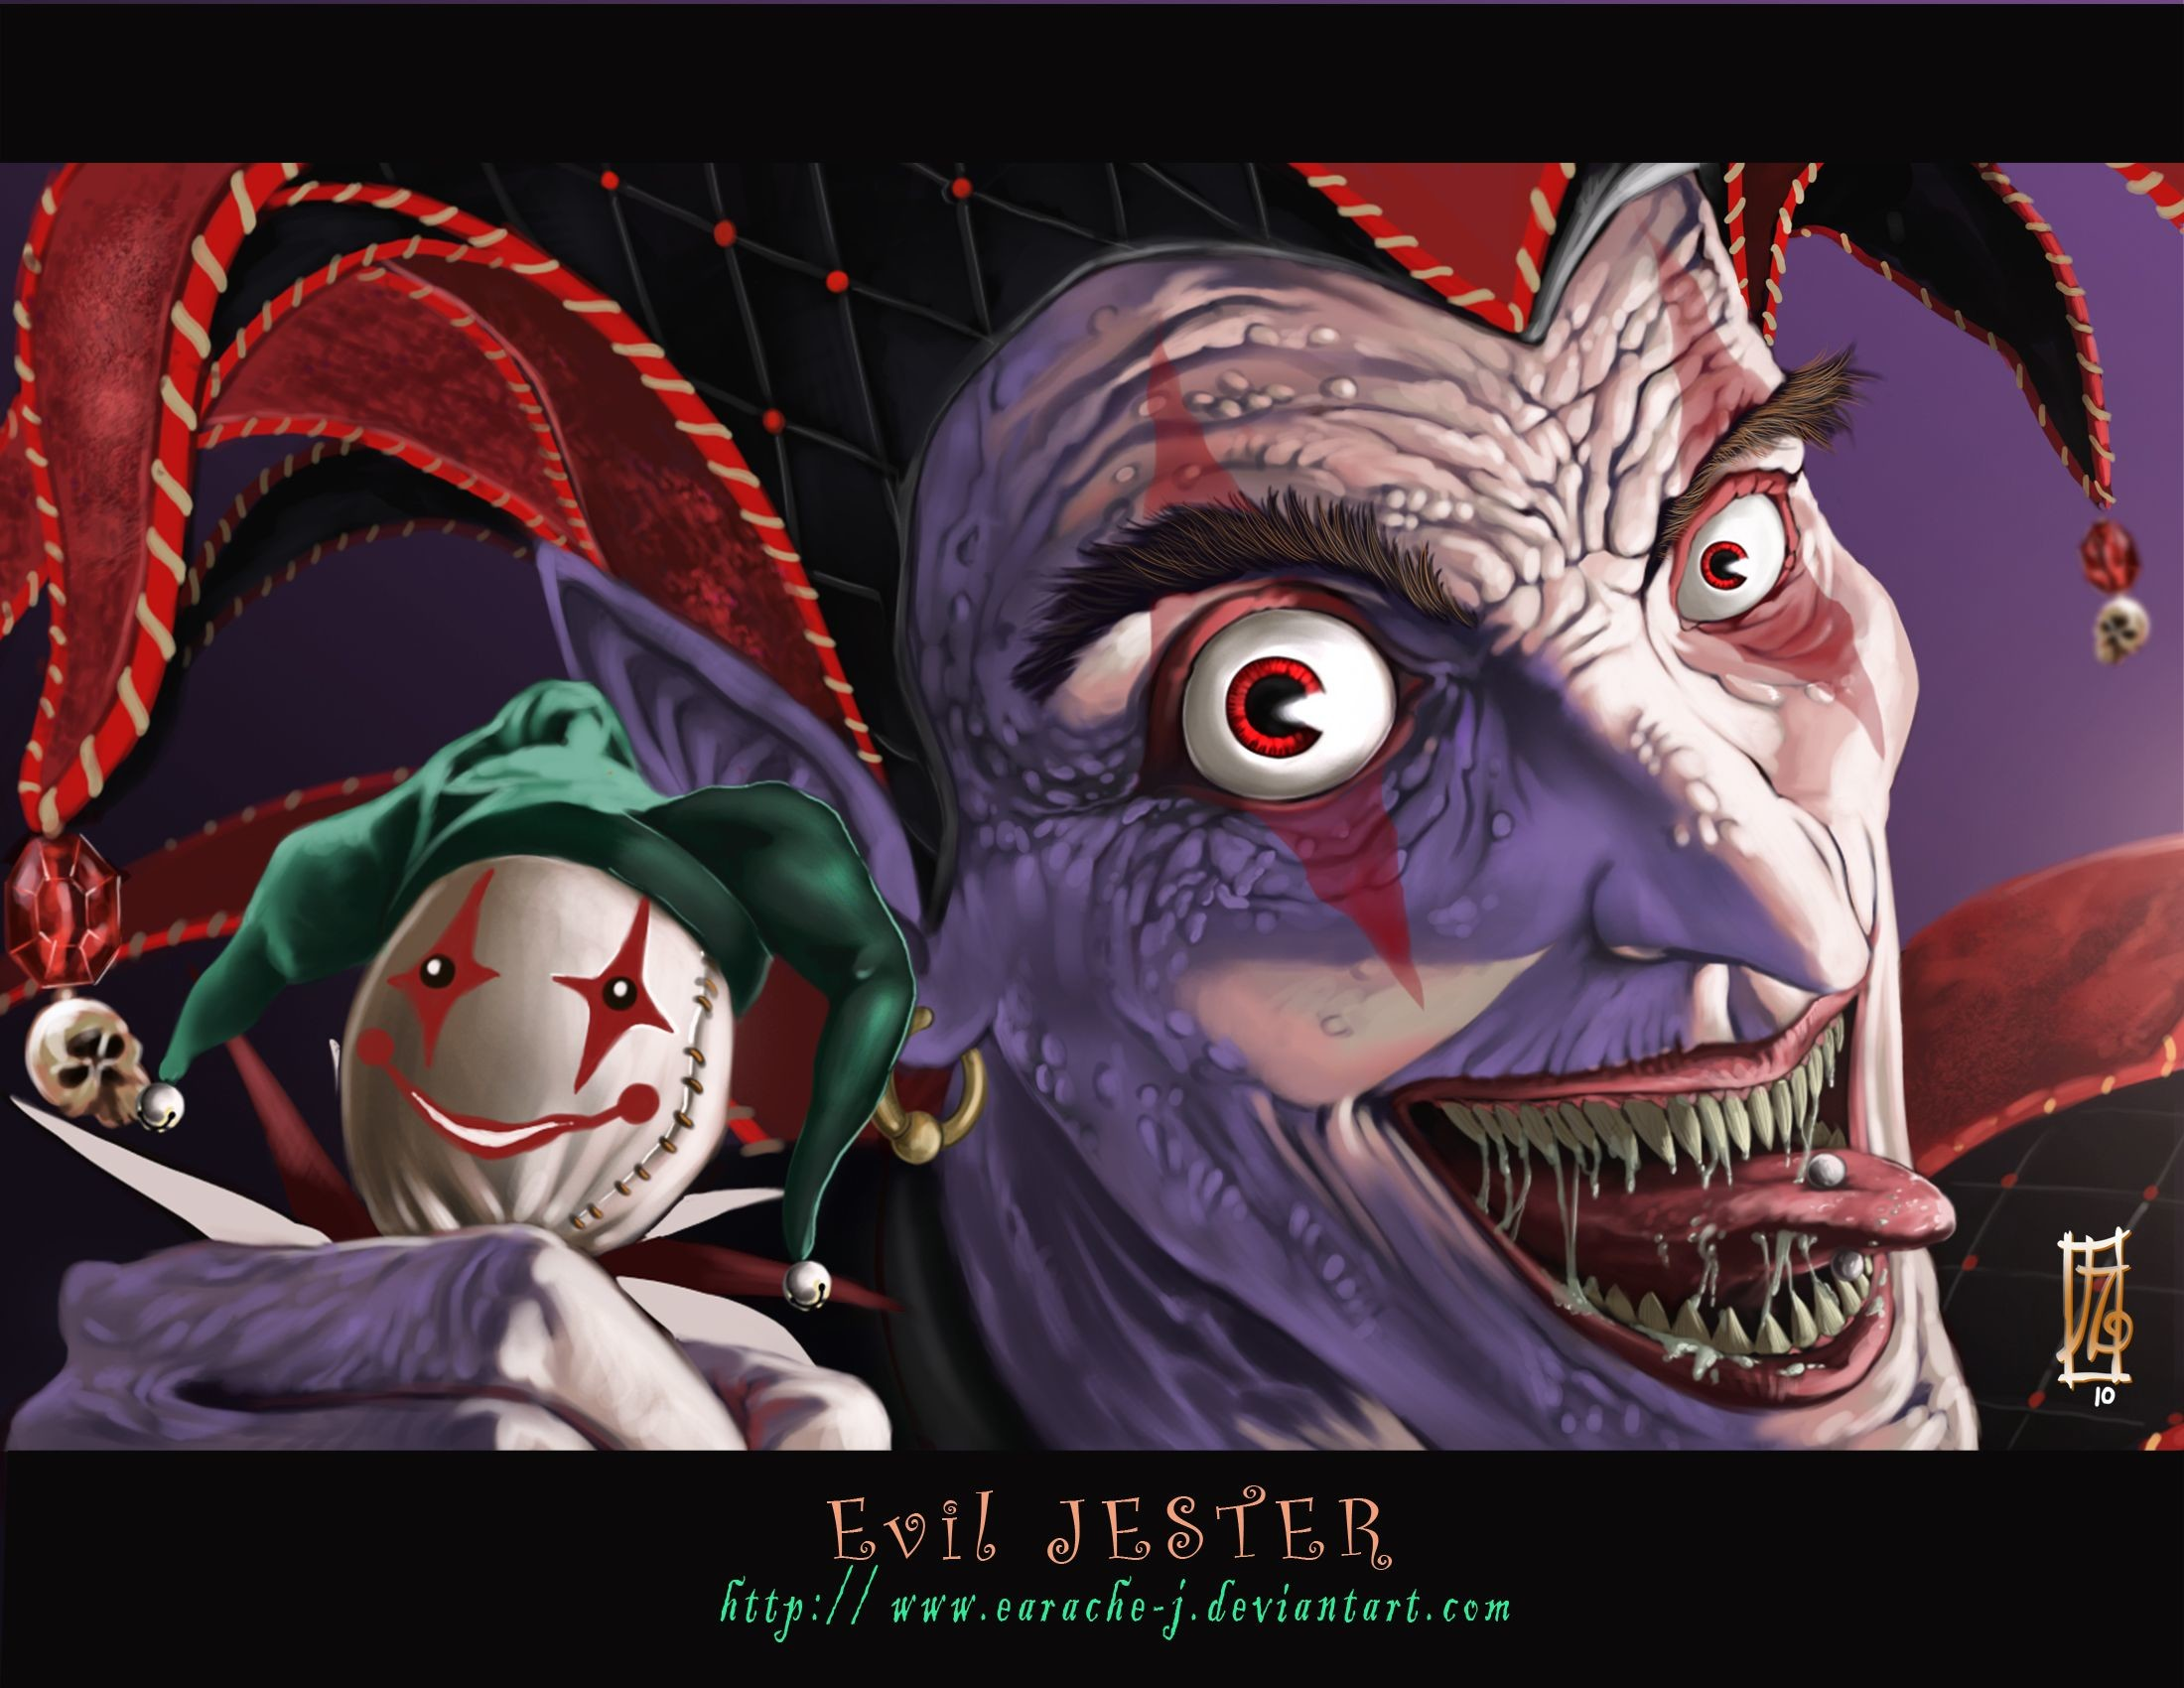 Res: 2200x1700, Evil Jester wallpaper from Clowns wallpapers